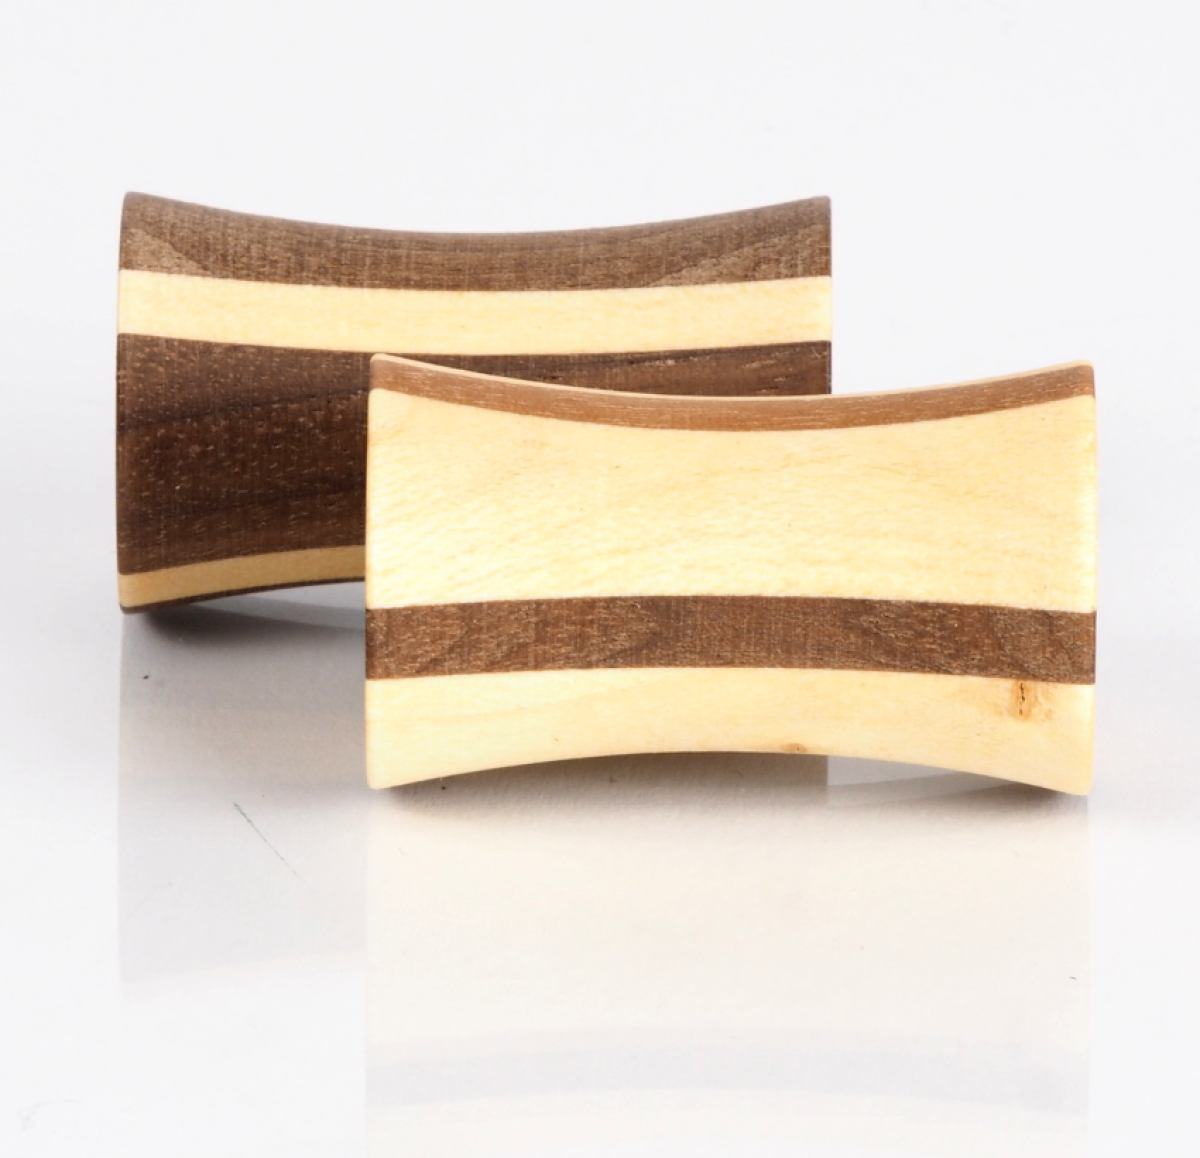 Spinning Flick-Top Tip made of maple and walnut by Naef | Kunstbaron